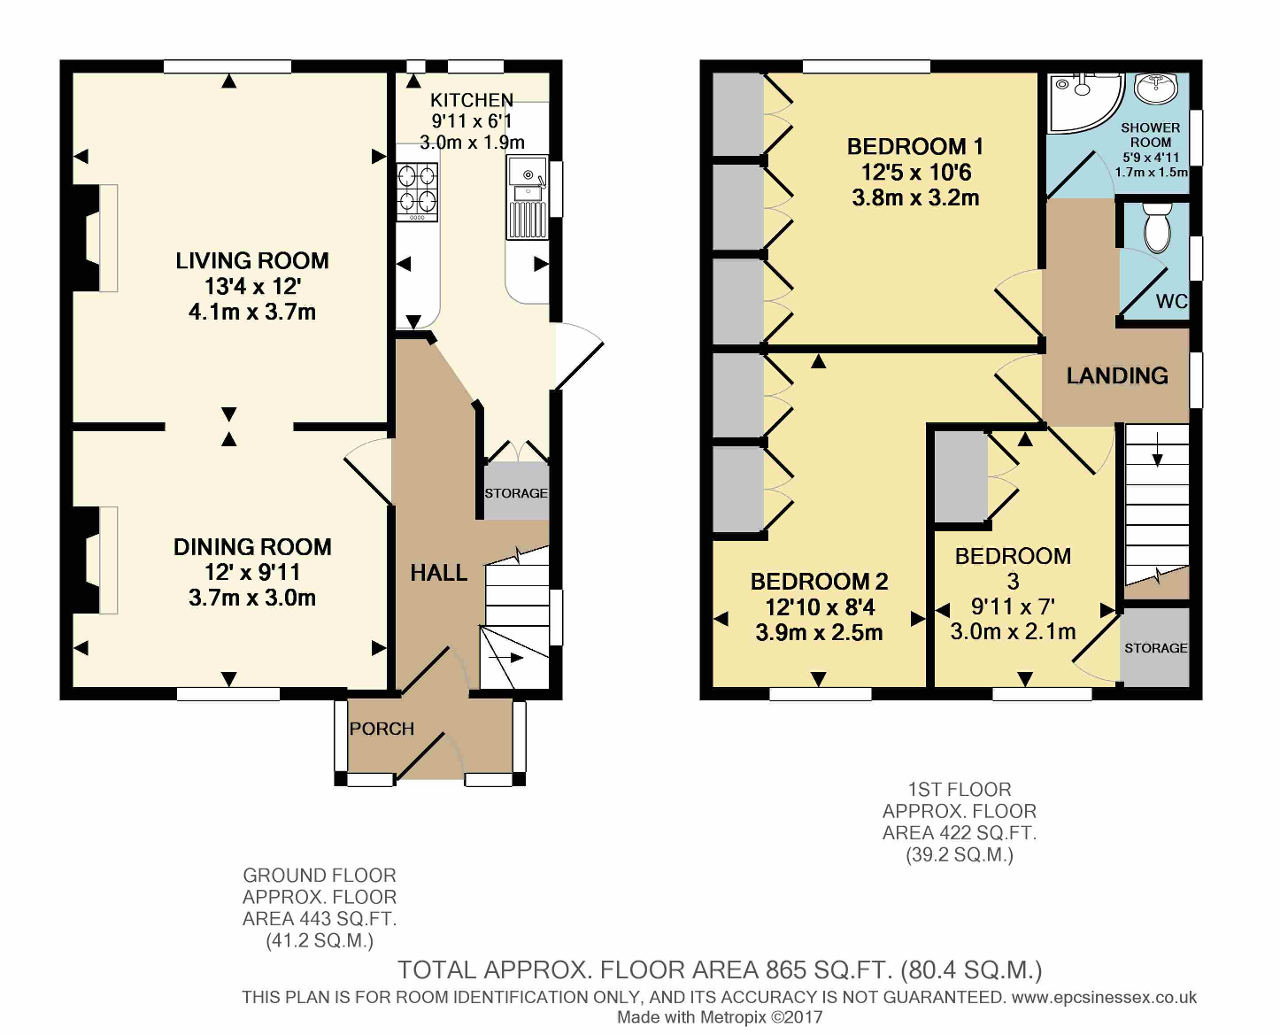 Floorplan of Waterbeach Road, Dagenham, Essex, RM9 4AA